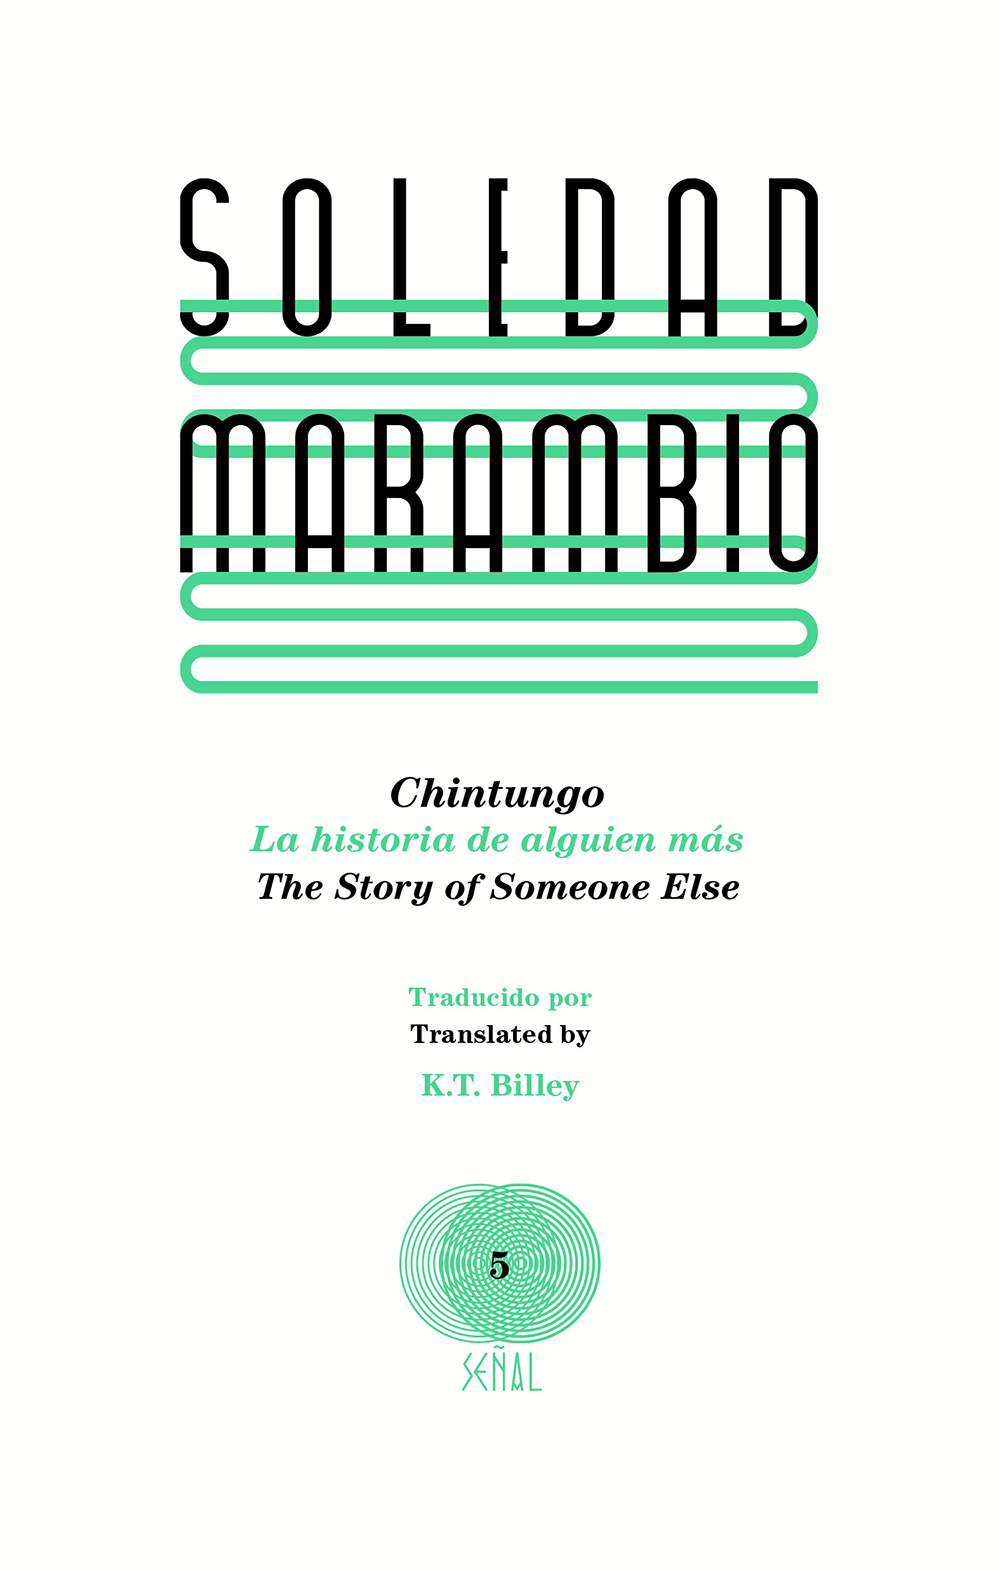 Chintungo: The Story of Someone Else